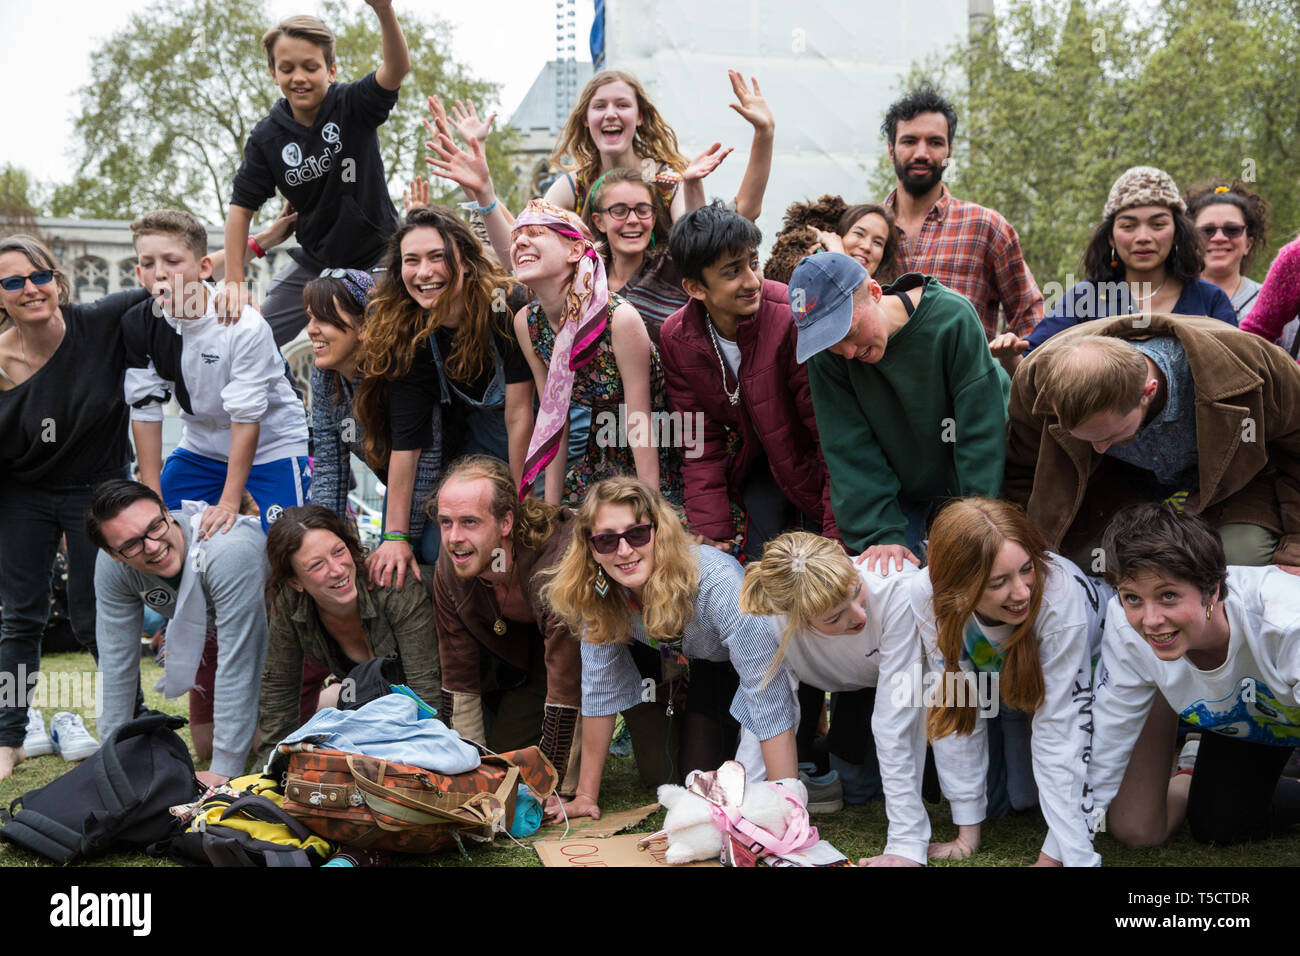 London, UK. 23rd April 2019. Climate change activists from Extinction Rebellion attend an assembly in Parliament Square before attempting to deliver letters to their Members of Parliament requesting meetings to discuss the issue of climate change. All but ten were prevented from doing so by the Metropolitan Police. Credit: Mark Kerrison/Alamy Live News - Stock Image